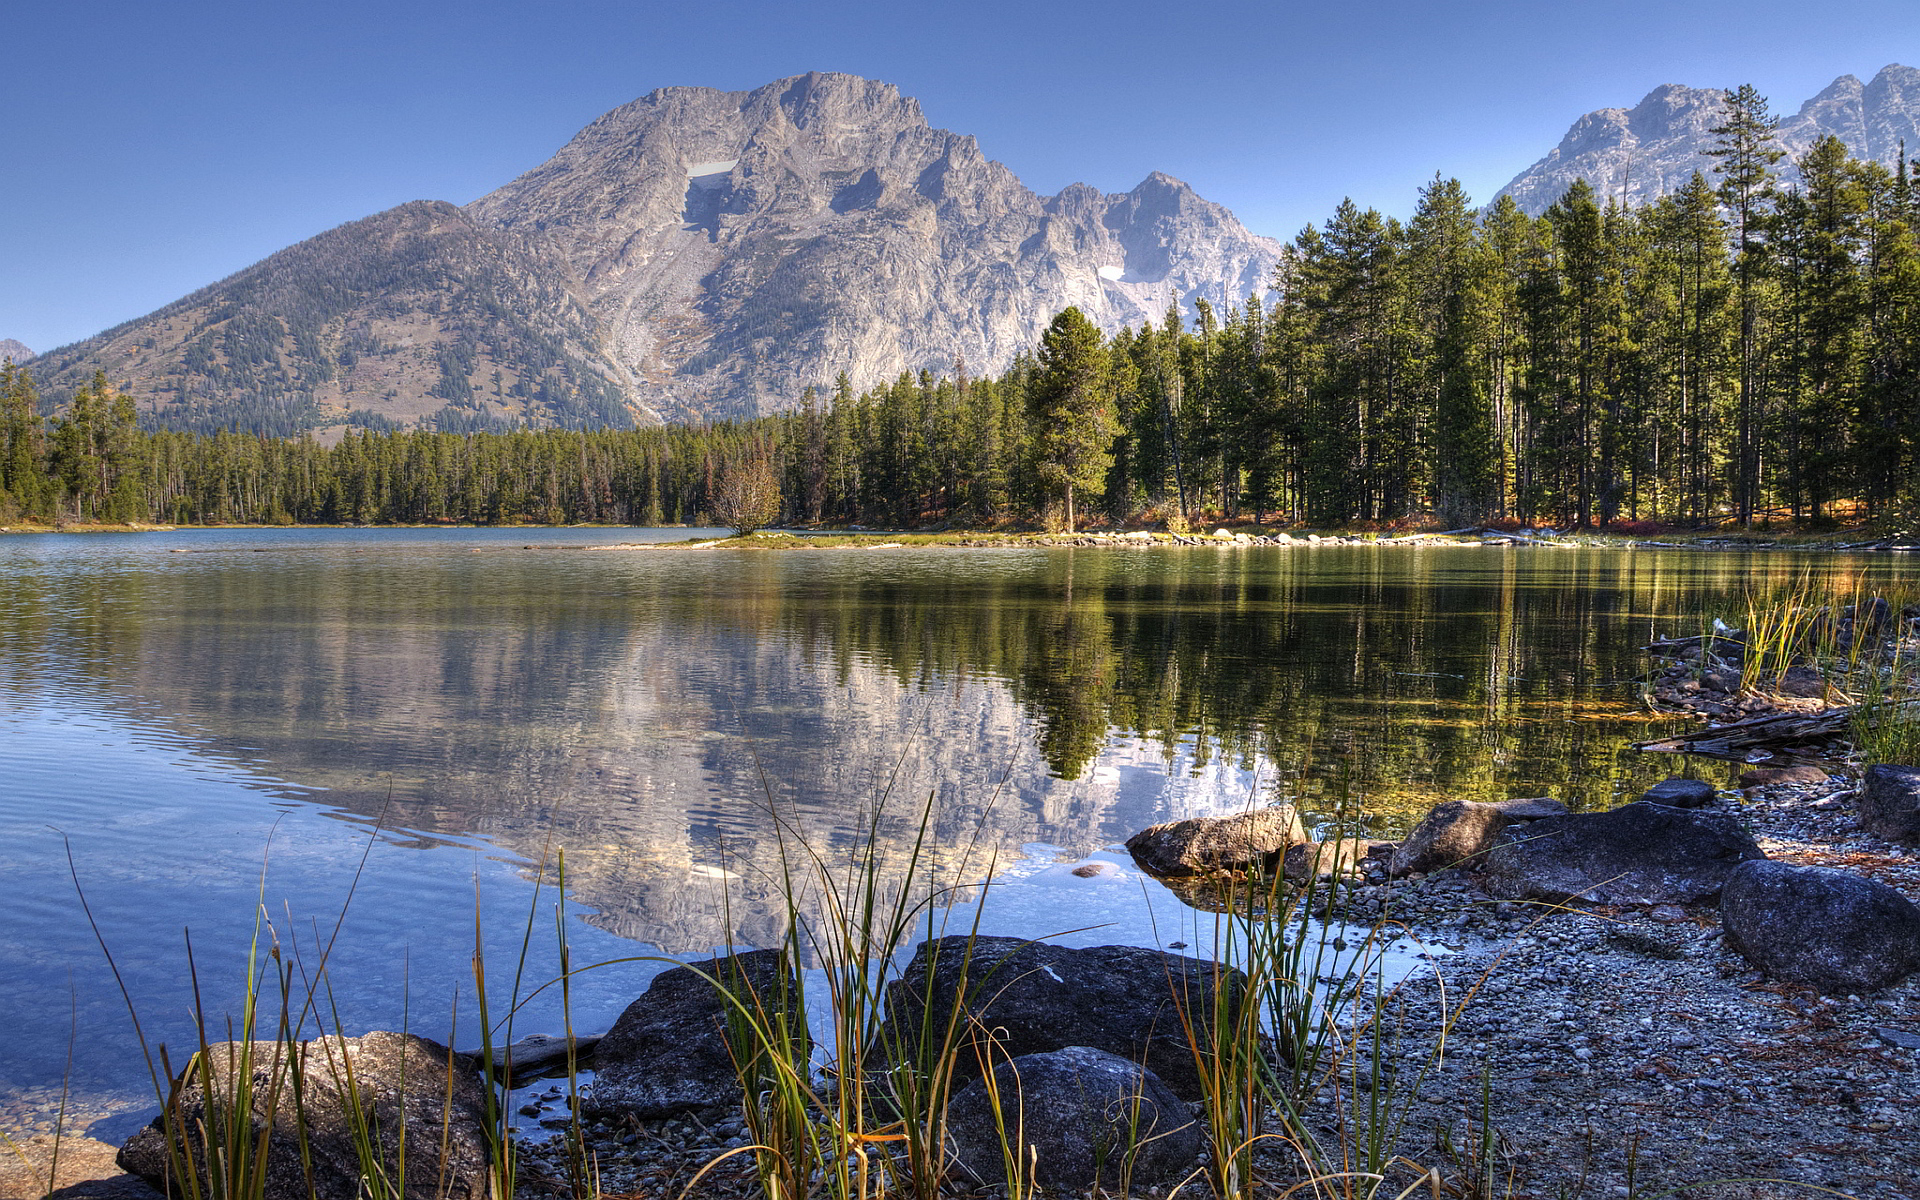 Lake mountains